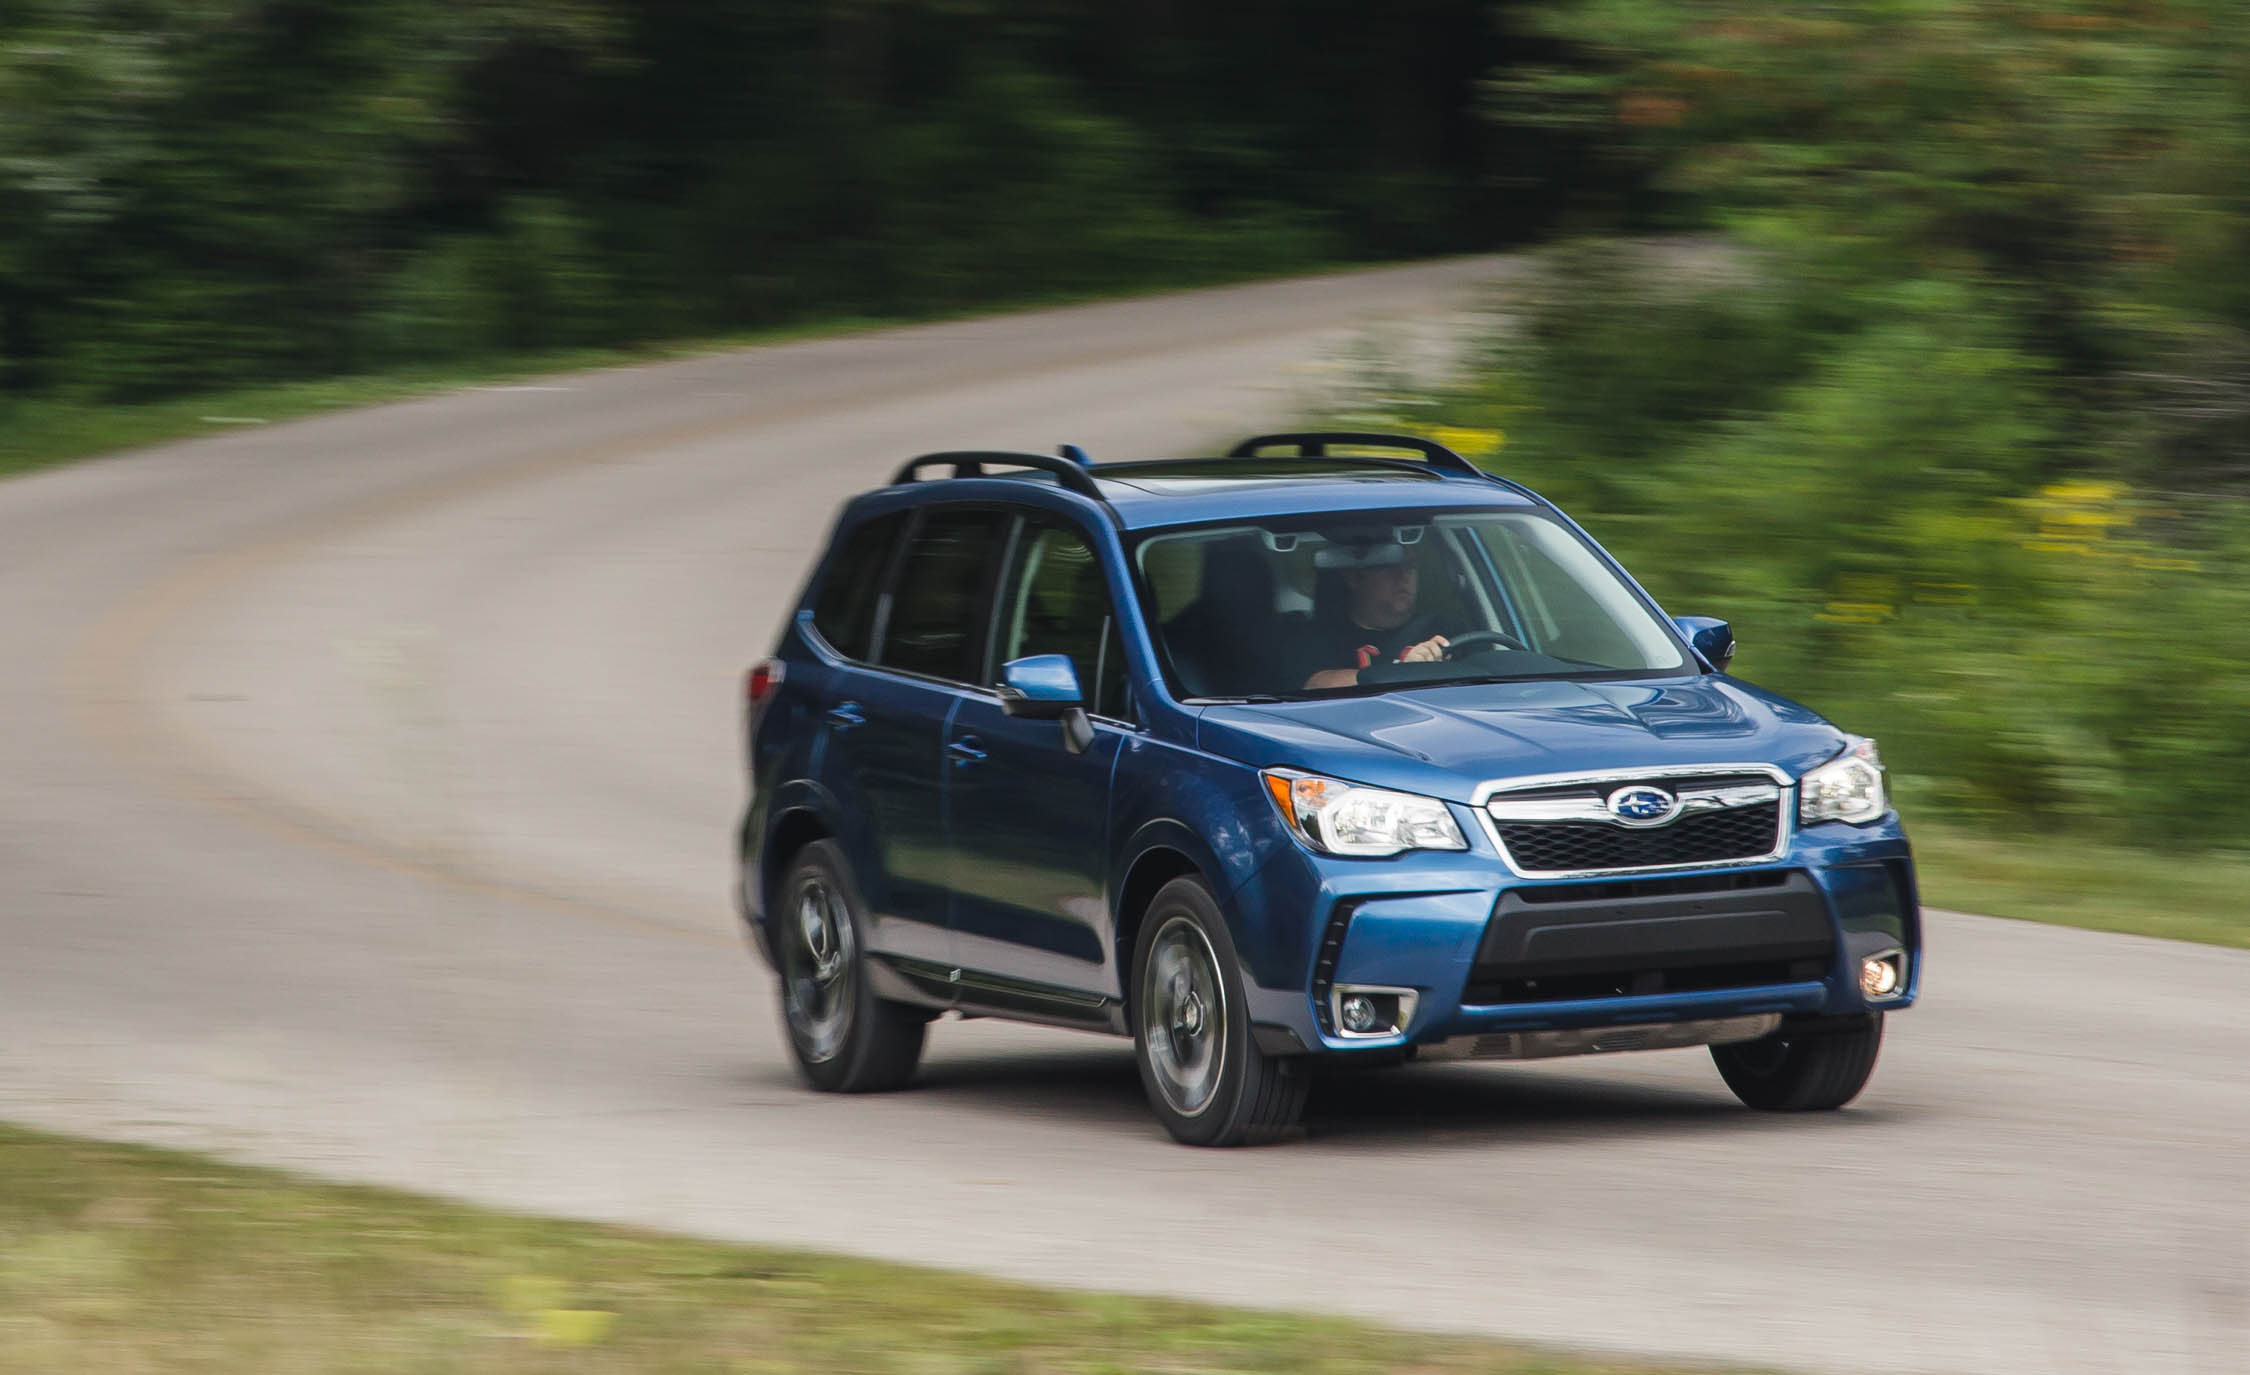 2016 subaru forester 2 0xt touring 9091 cars. Black Bedroom Furniture Sets. Home Design Ideas